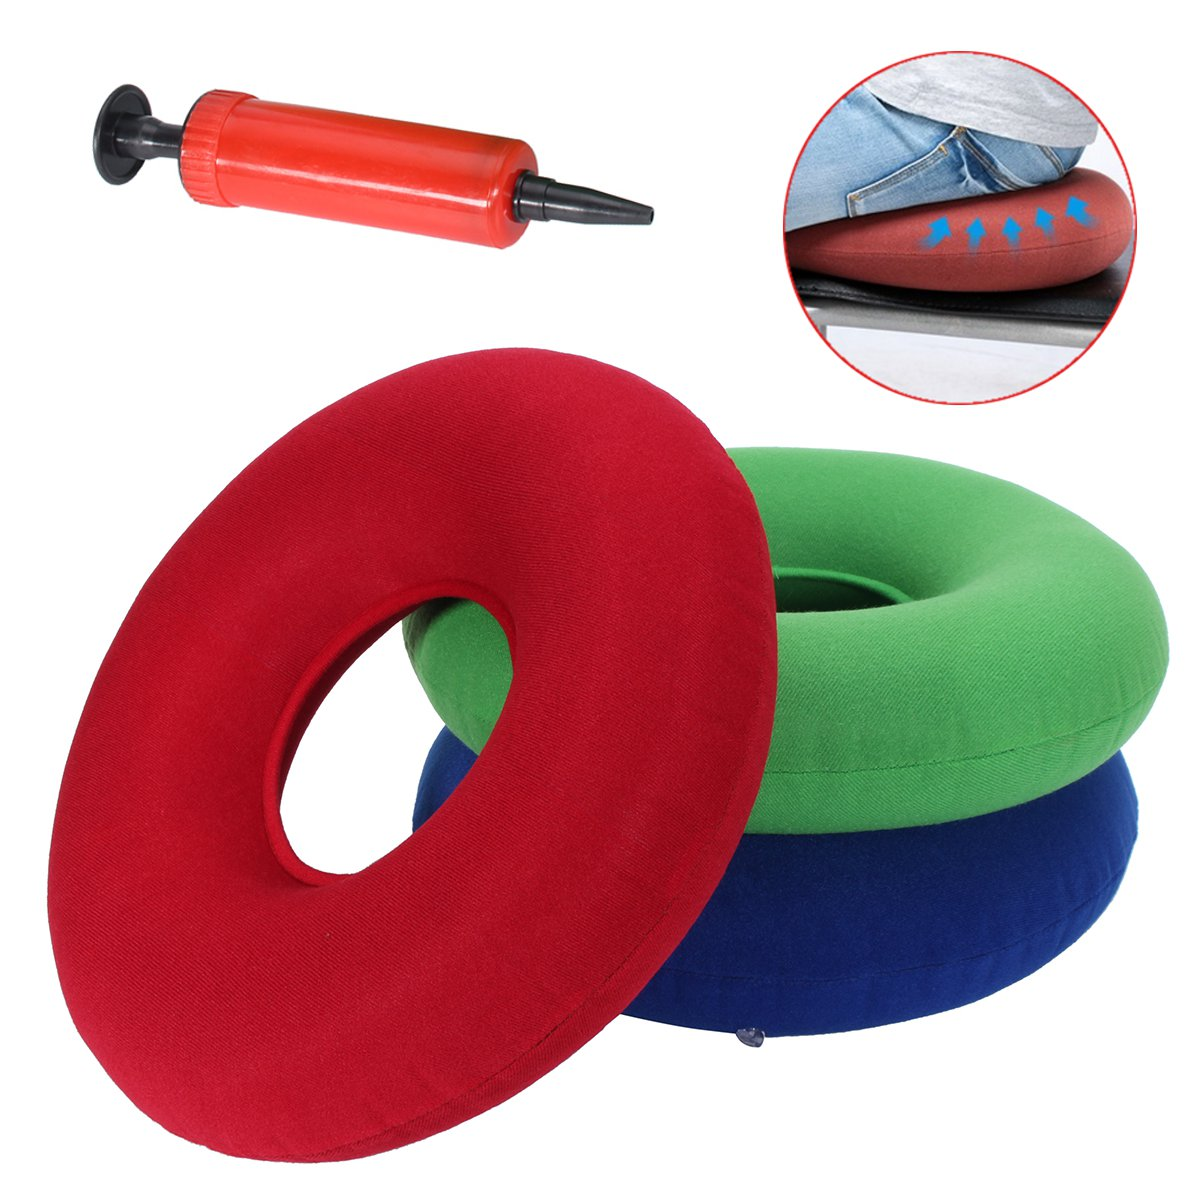 14 original donut cushion inflatable donut pillow for tailbone pain relief hemorrhoid treatment bed sores prostatitis